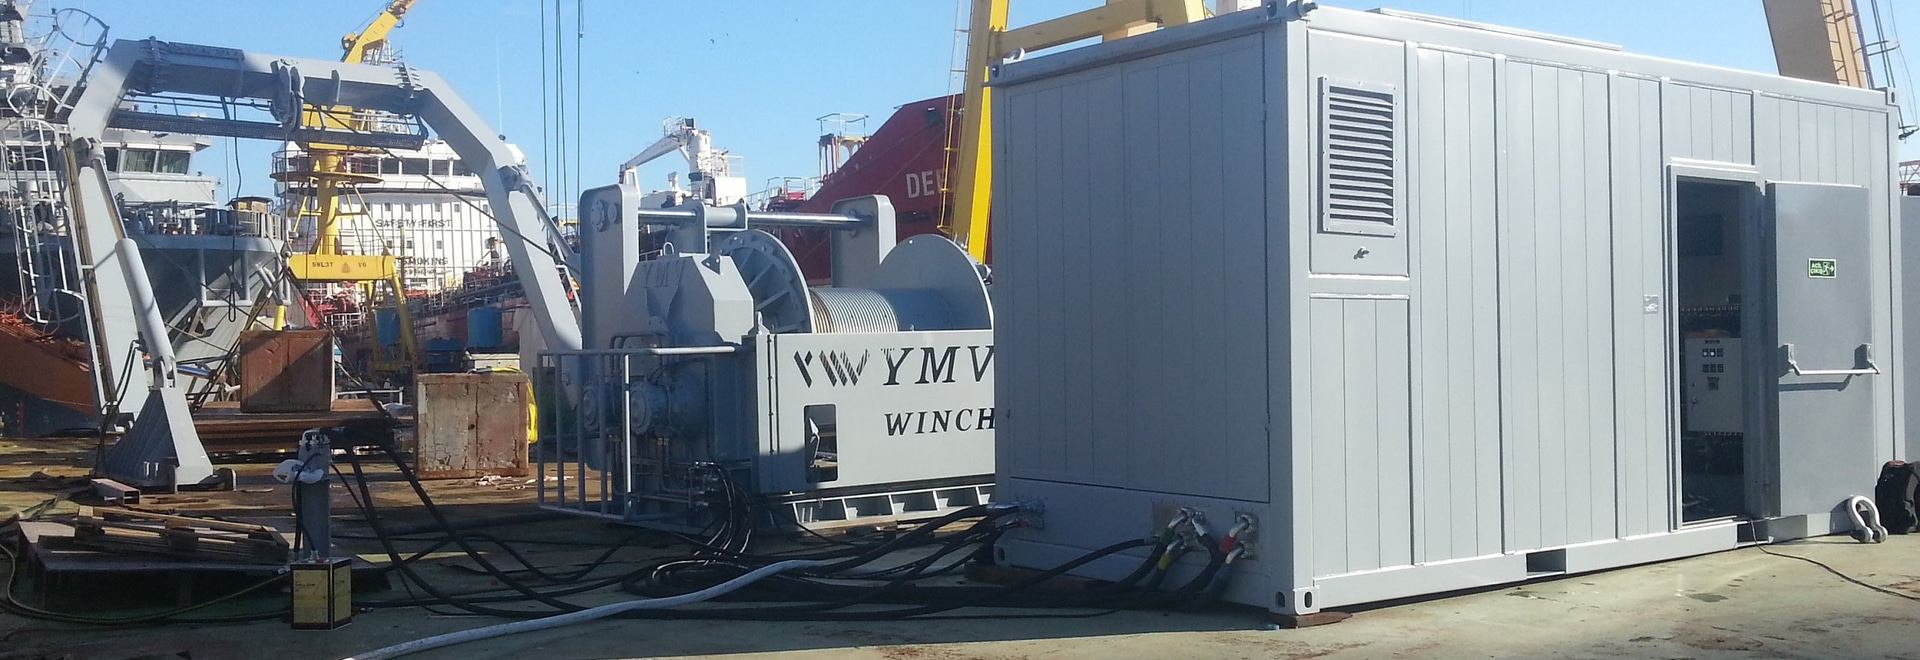 YMV SWL10T @3500 MT ACTIVE HEAVE COMPENSATION WINCH SYSTEM